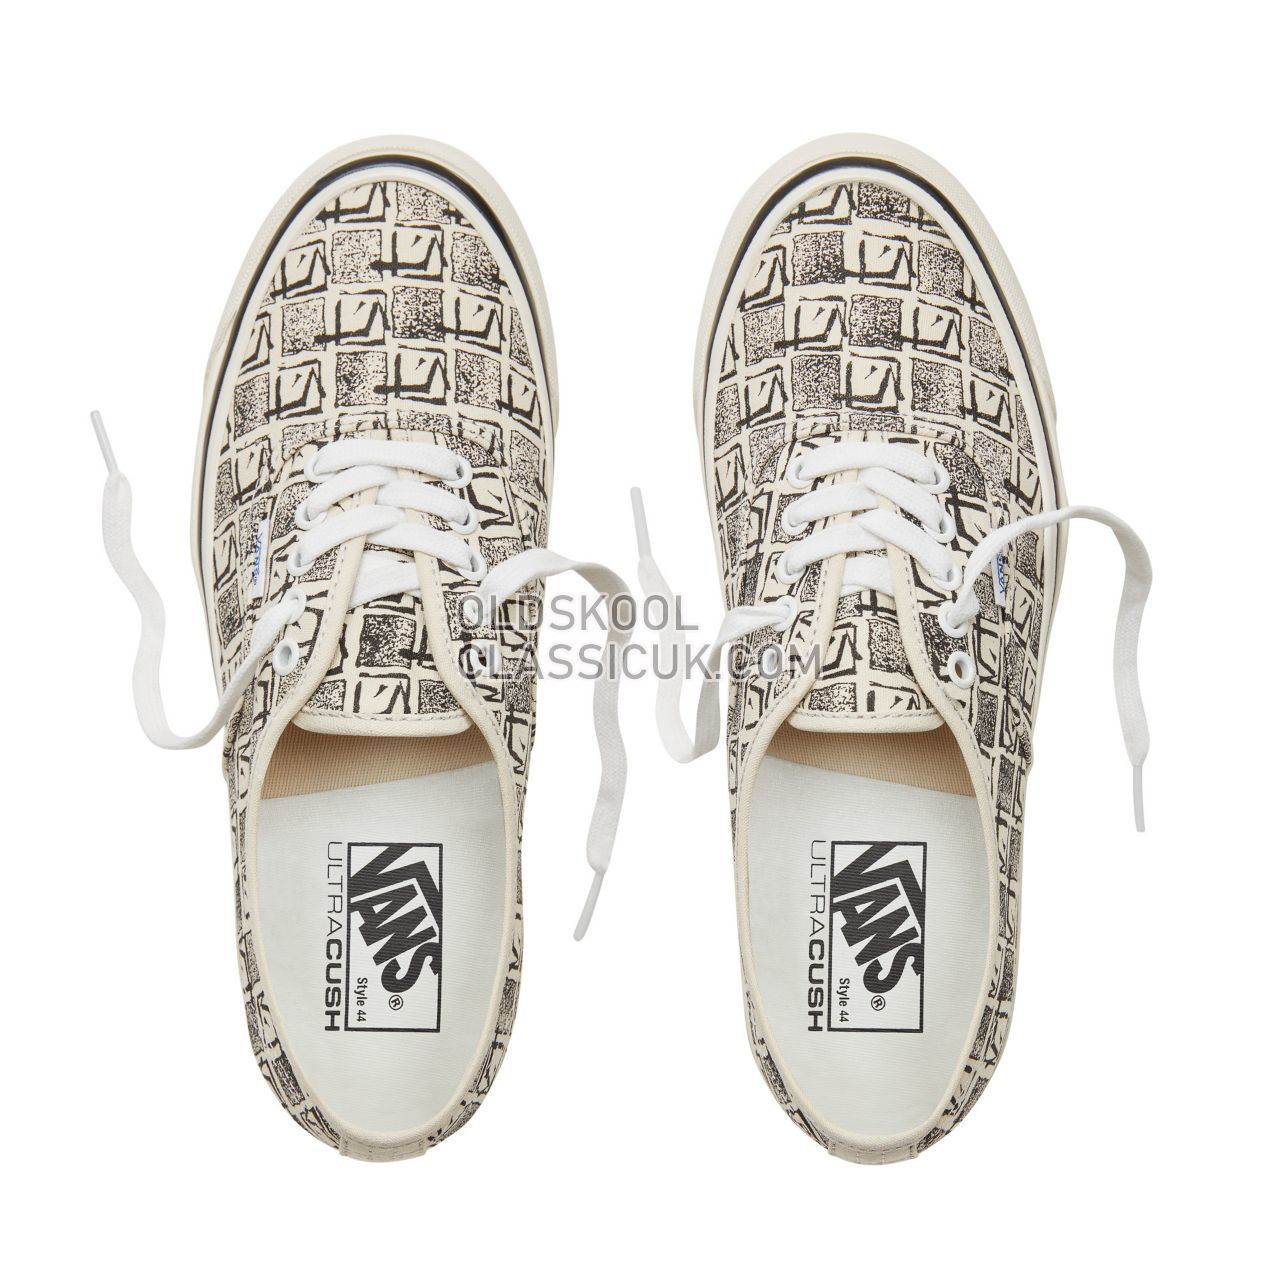 Vans Anaheim Factory Authentic 44 Sneakers Mens (Anaheim Factory) Og White/Square Root VA38ENU6D Shoes